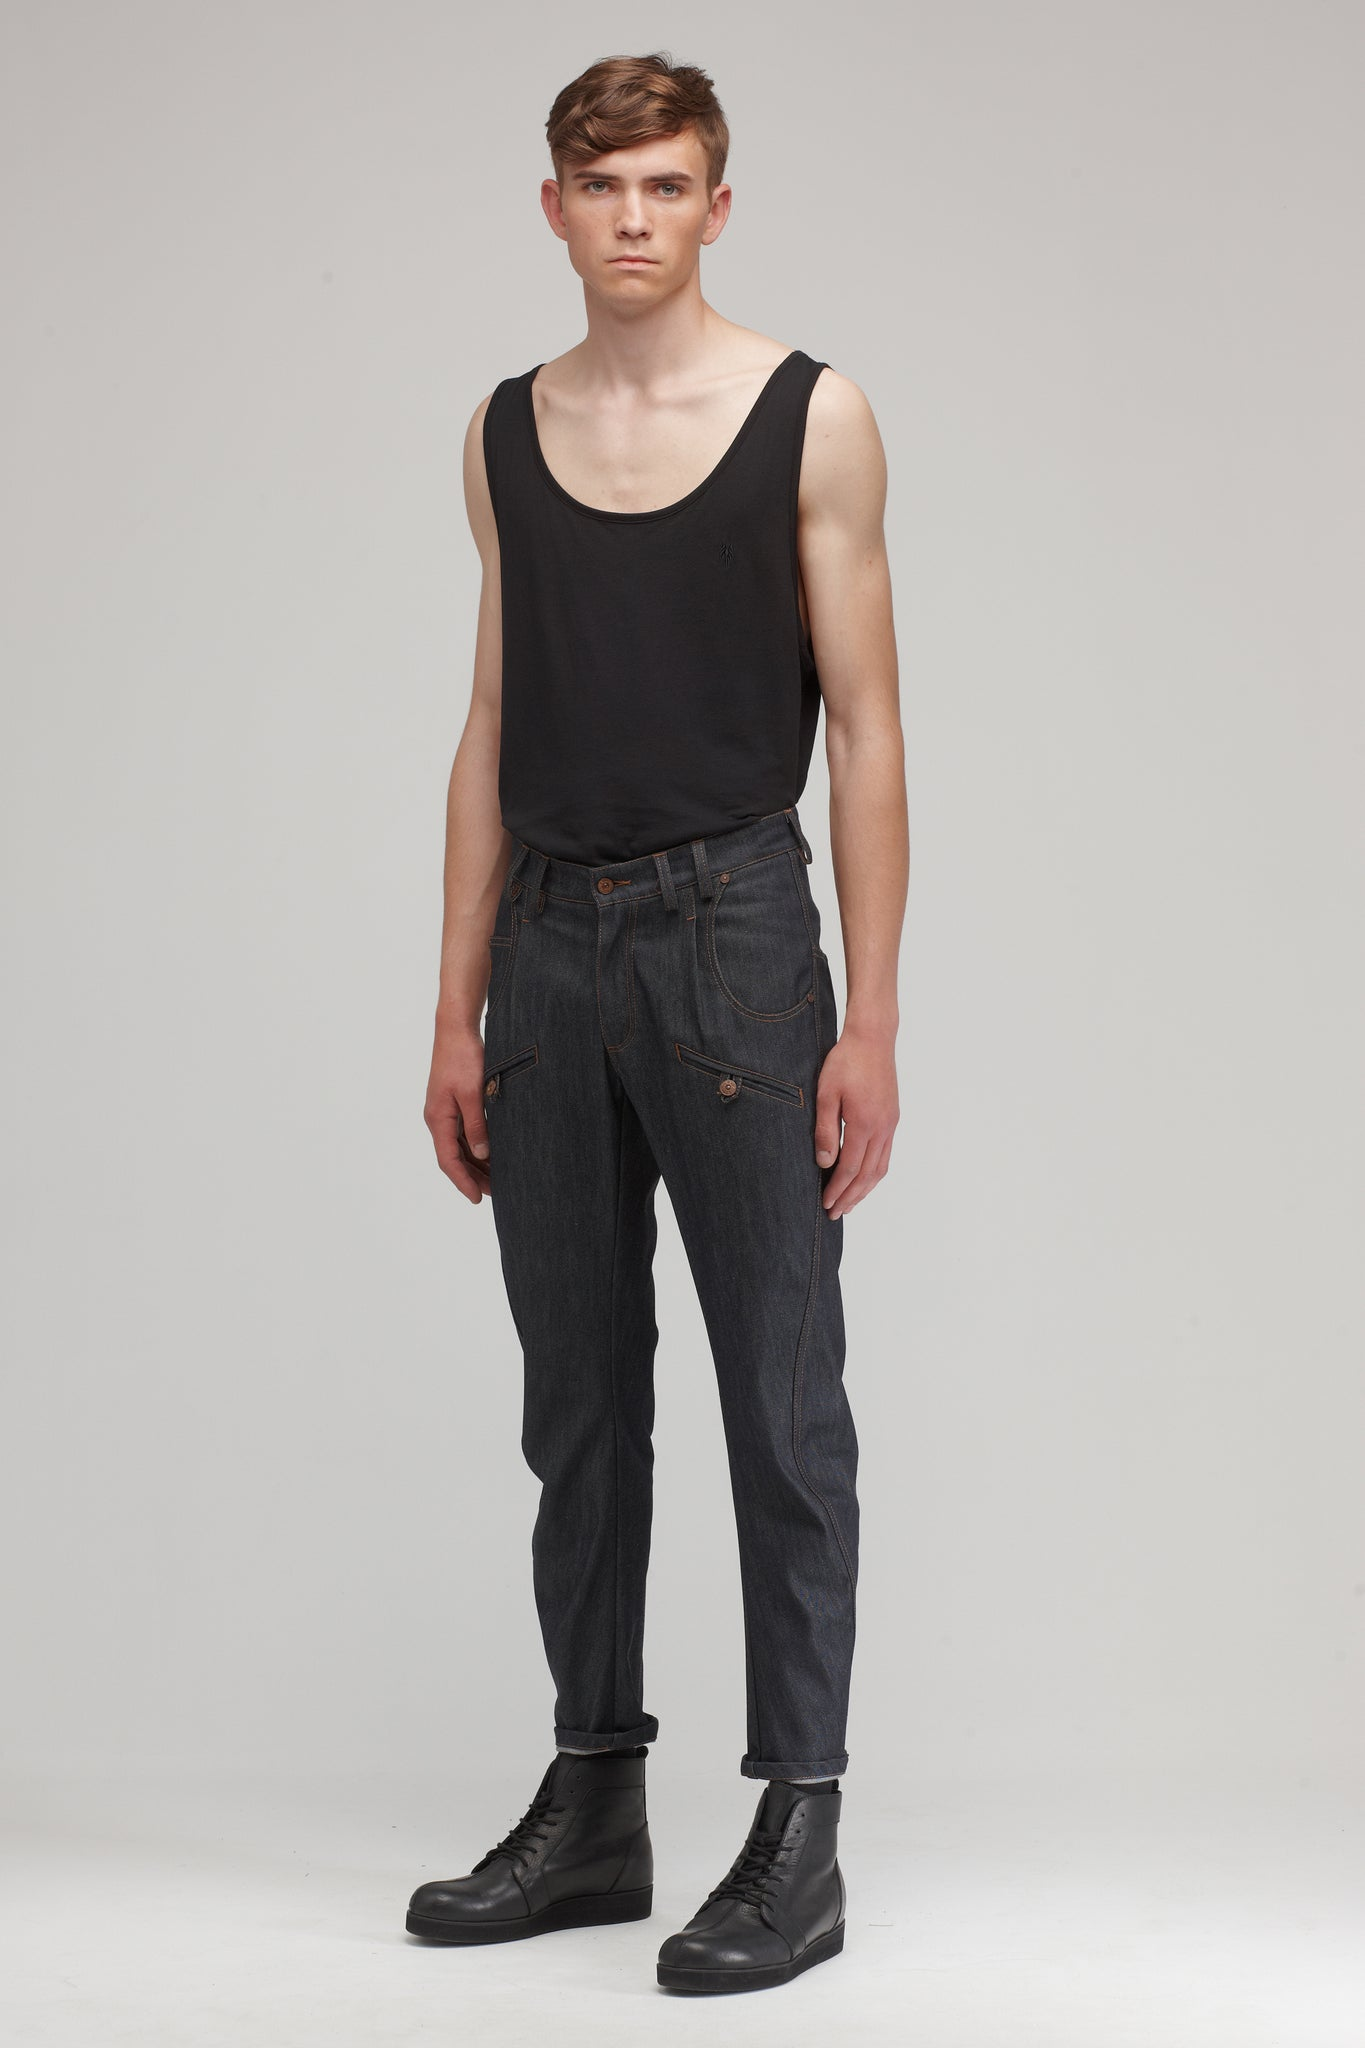 ADVANCED NEW unisex jeans - One Wolf